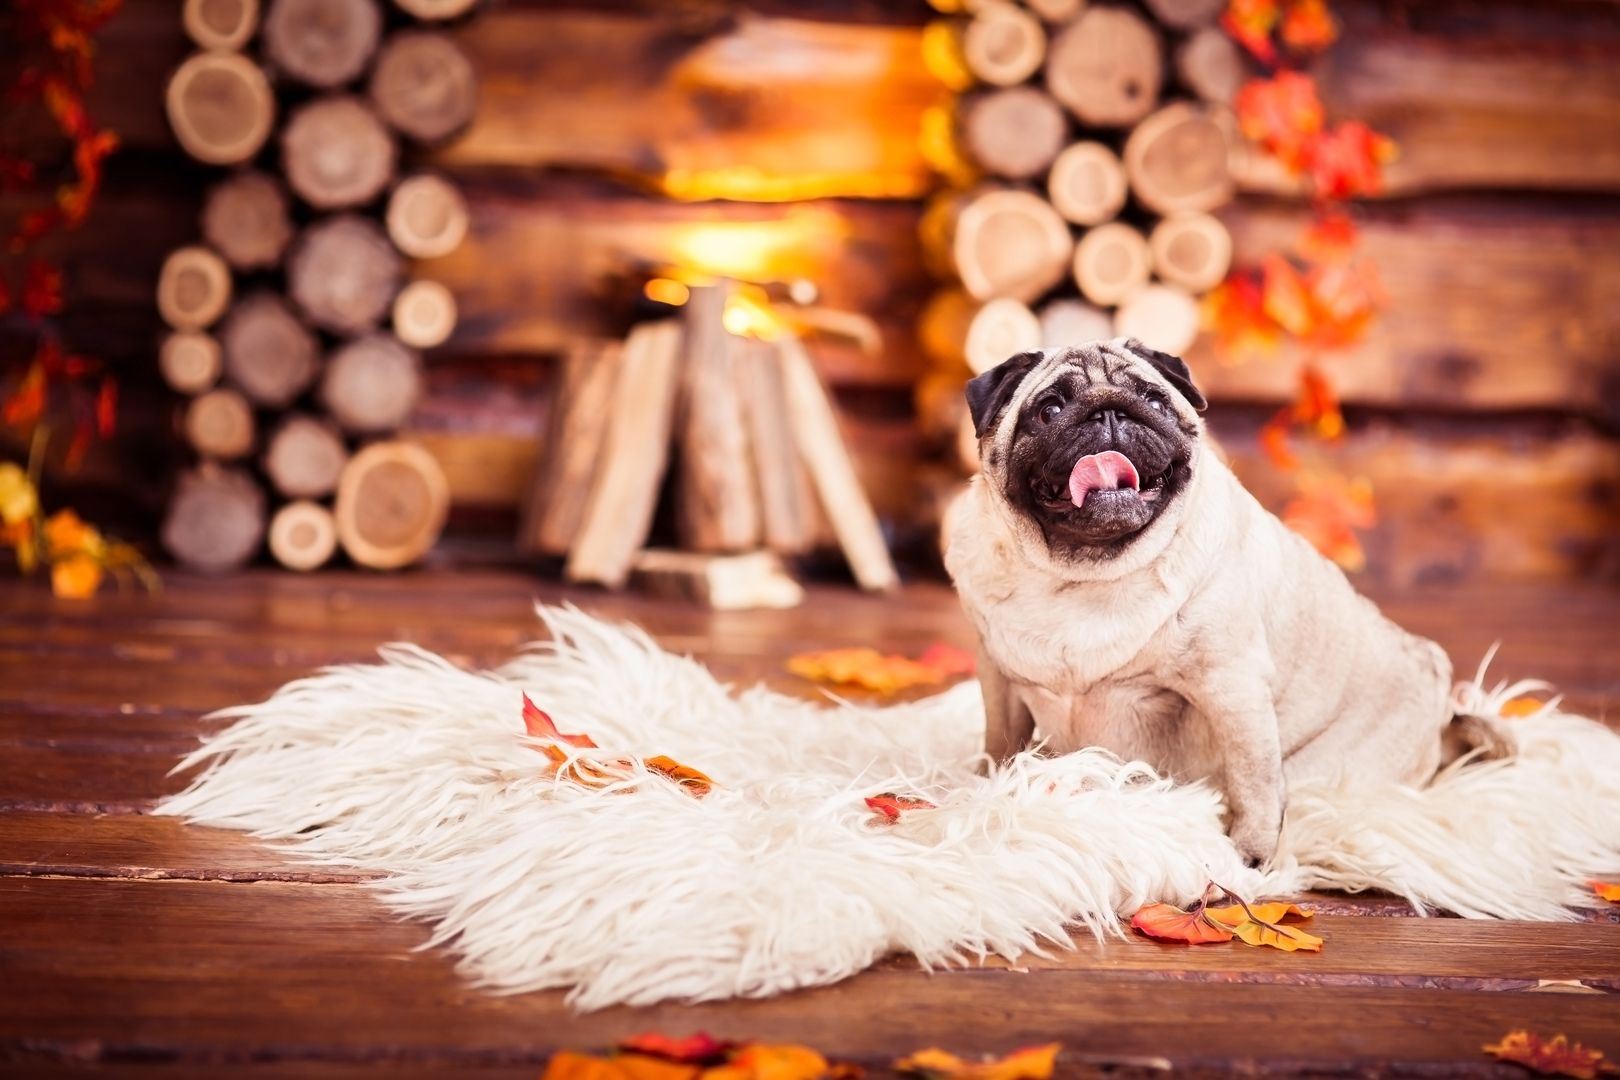 Customize Your New Tab Page And Enjoy Adorable Wallpaper Images Of Pugs With Every New Tab With My Pugs Most Popular Dog Breeds Images Of Pugs Pug Puppies